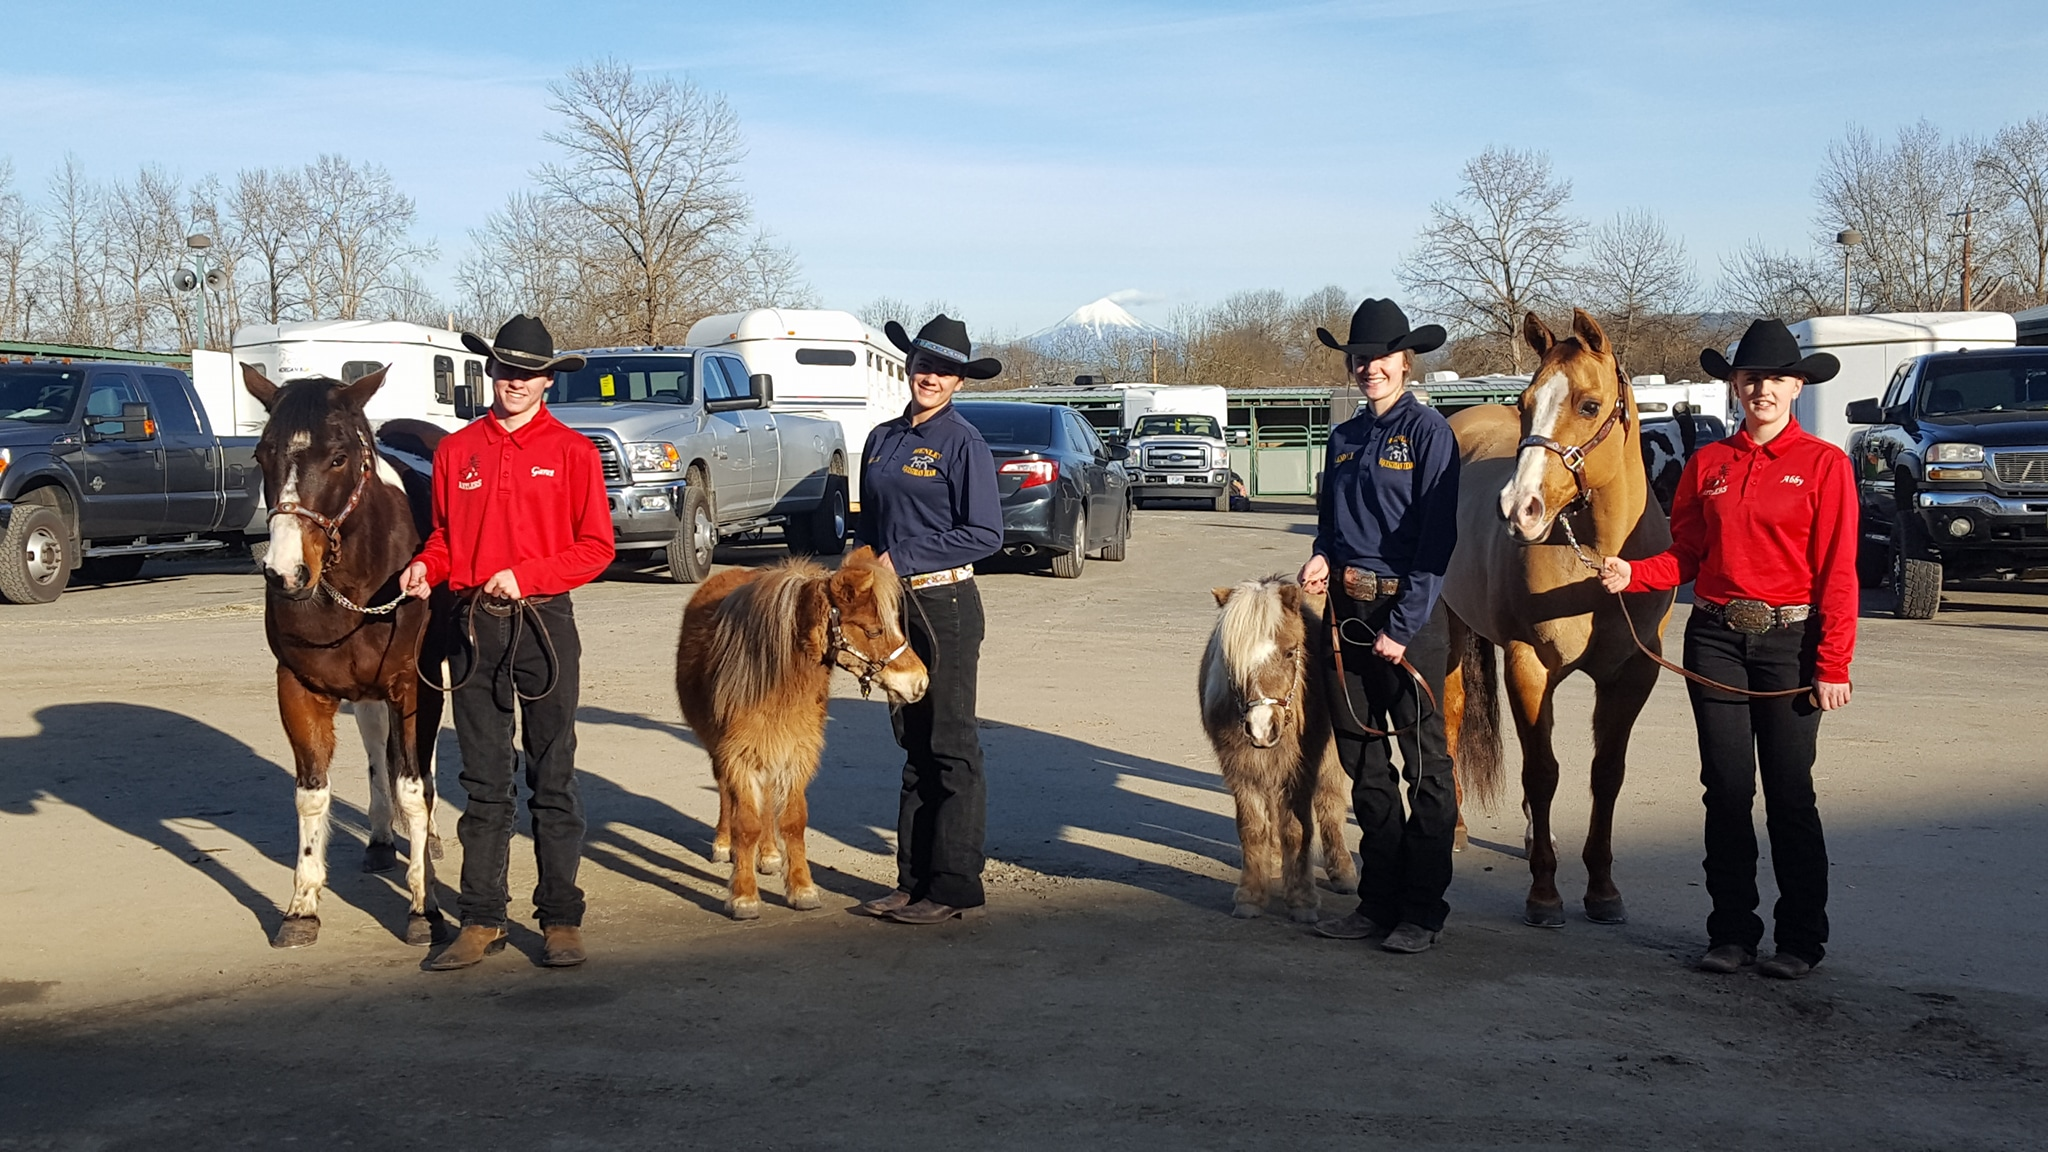 """Horsemen athletes get ready to partake in the """"In Hand Obstacle Relay"""" at the Southern Oregon High School Equestrian Team Meet. Pictured left to right: Garret Fox (Bonanza HS), Lillian George (Henley HS), Kendal Griffith (Henley HS), and Abby Orella (Bonanza HS). Image by Danielle George."""